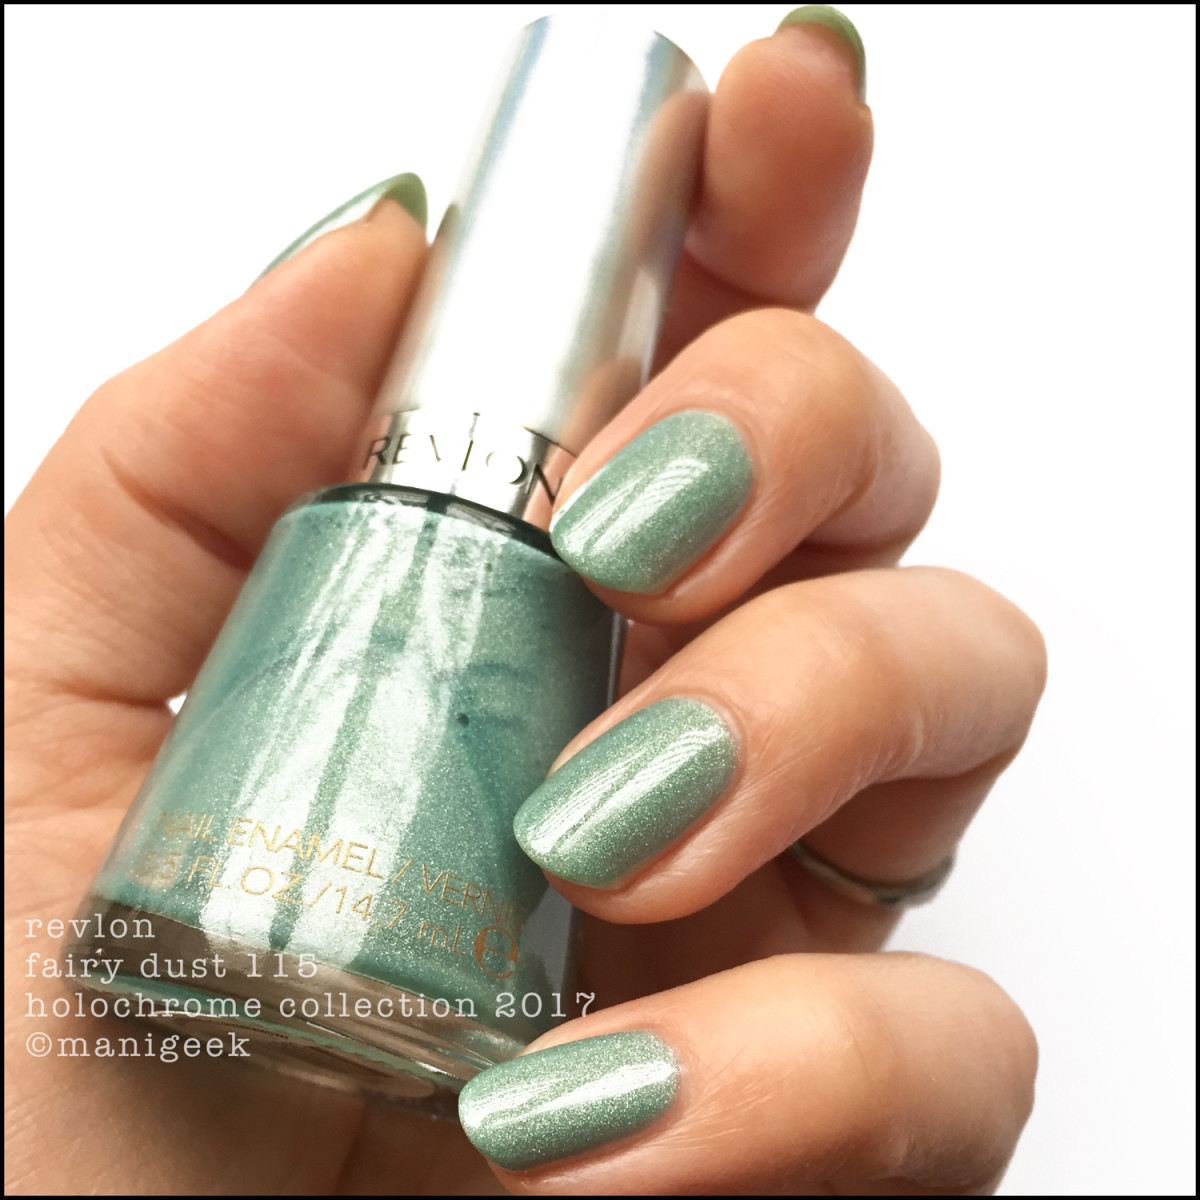 Revlon Fairy Dust 115 Holochrome Collection Swatches